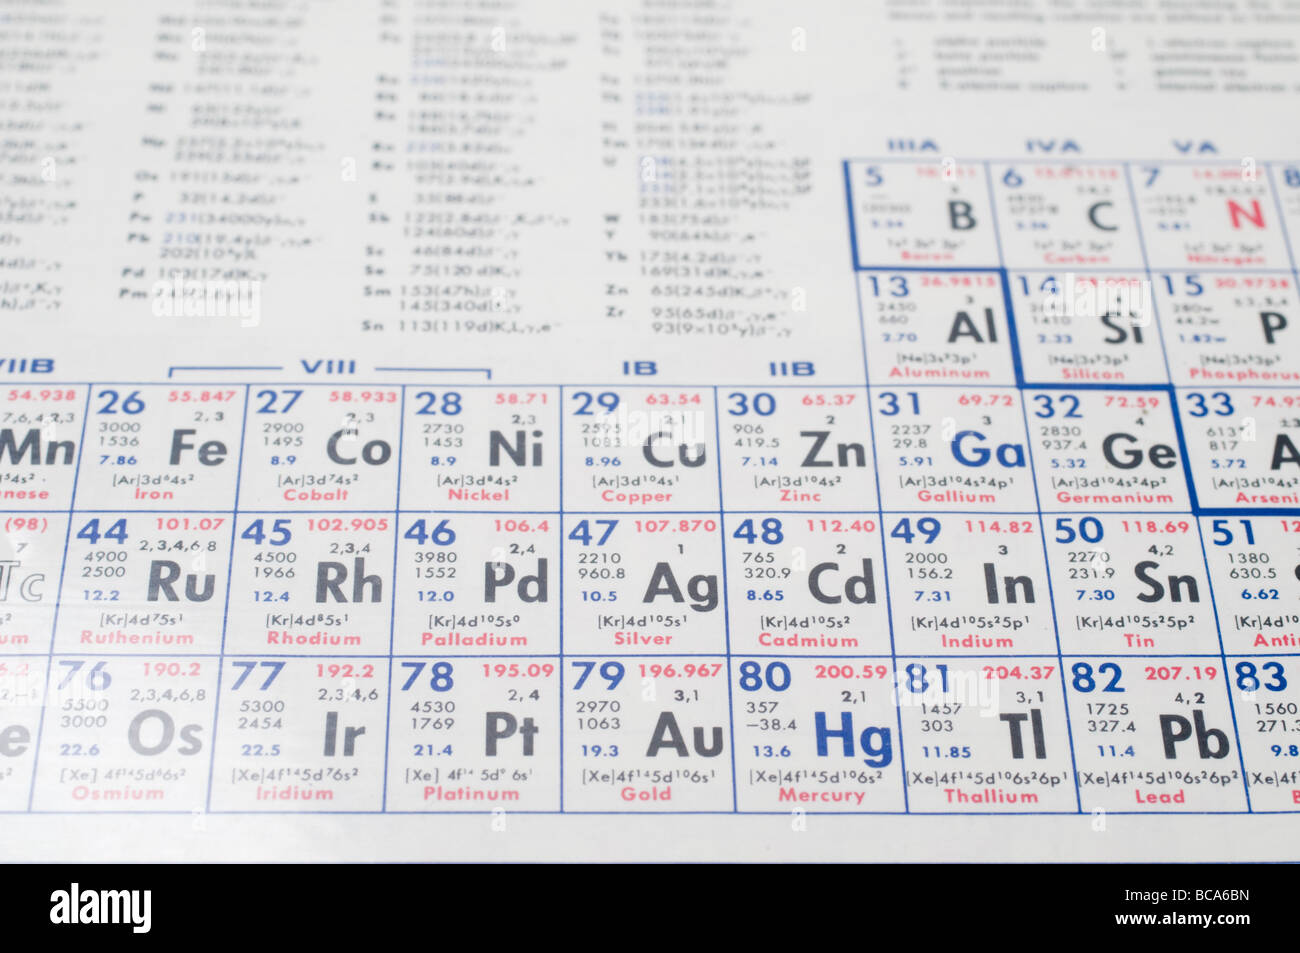 Chemical periodic table selective focus the periodic table shows the chemical periodic table selective focus the periodic table shows the chemical elements ordered by atomic number urtaz